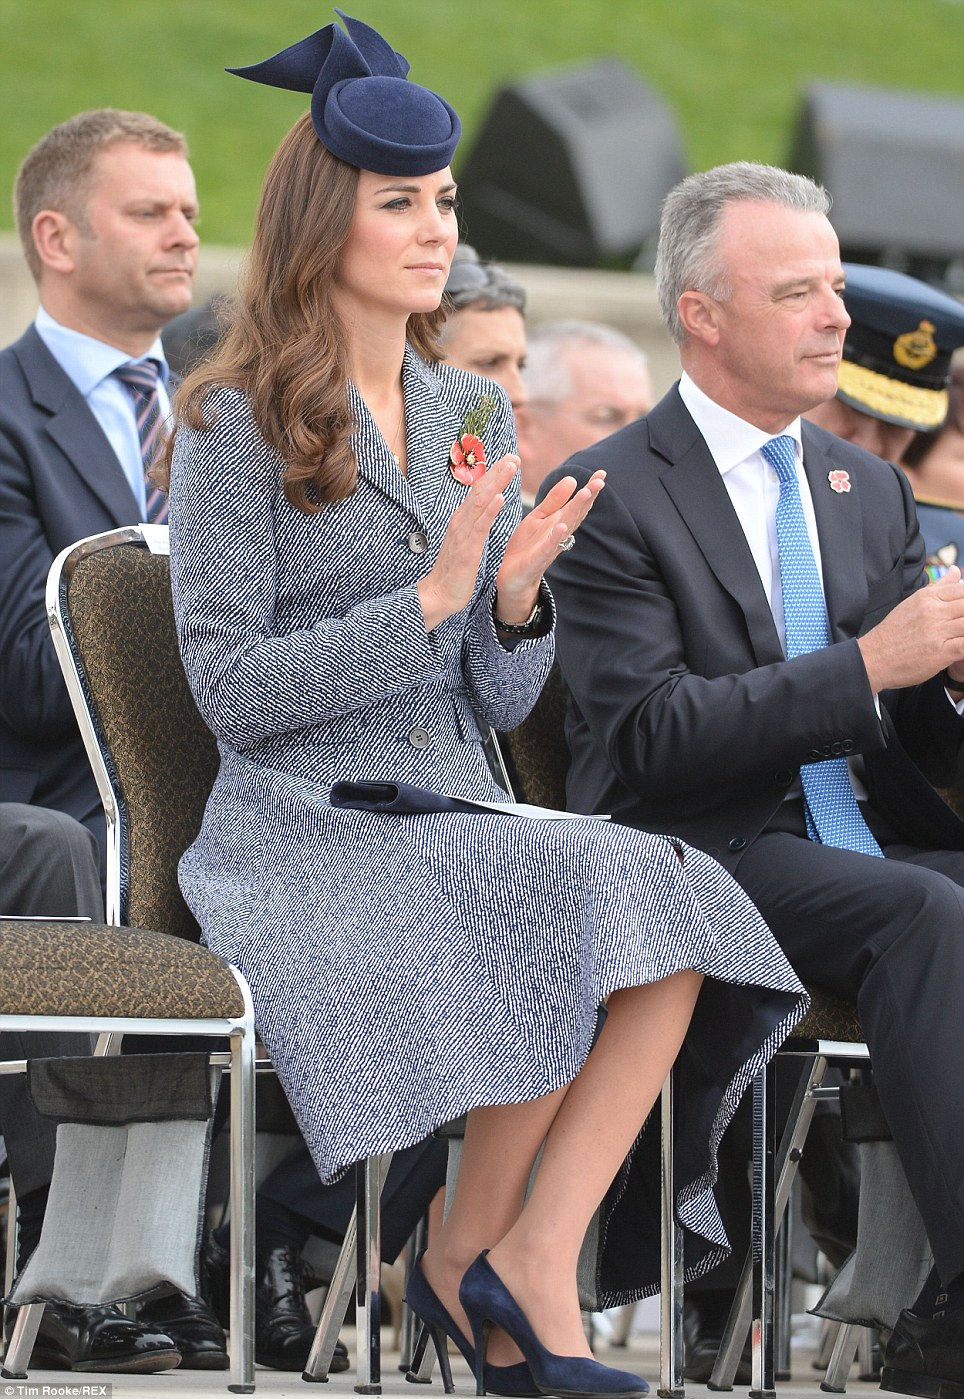 Tweed: The Palace would not release further details about Kate's outfit, as they did not want to detract from the Anzac Day service